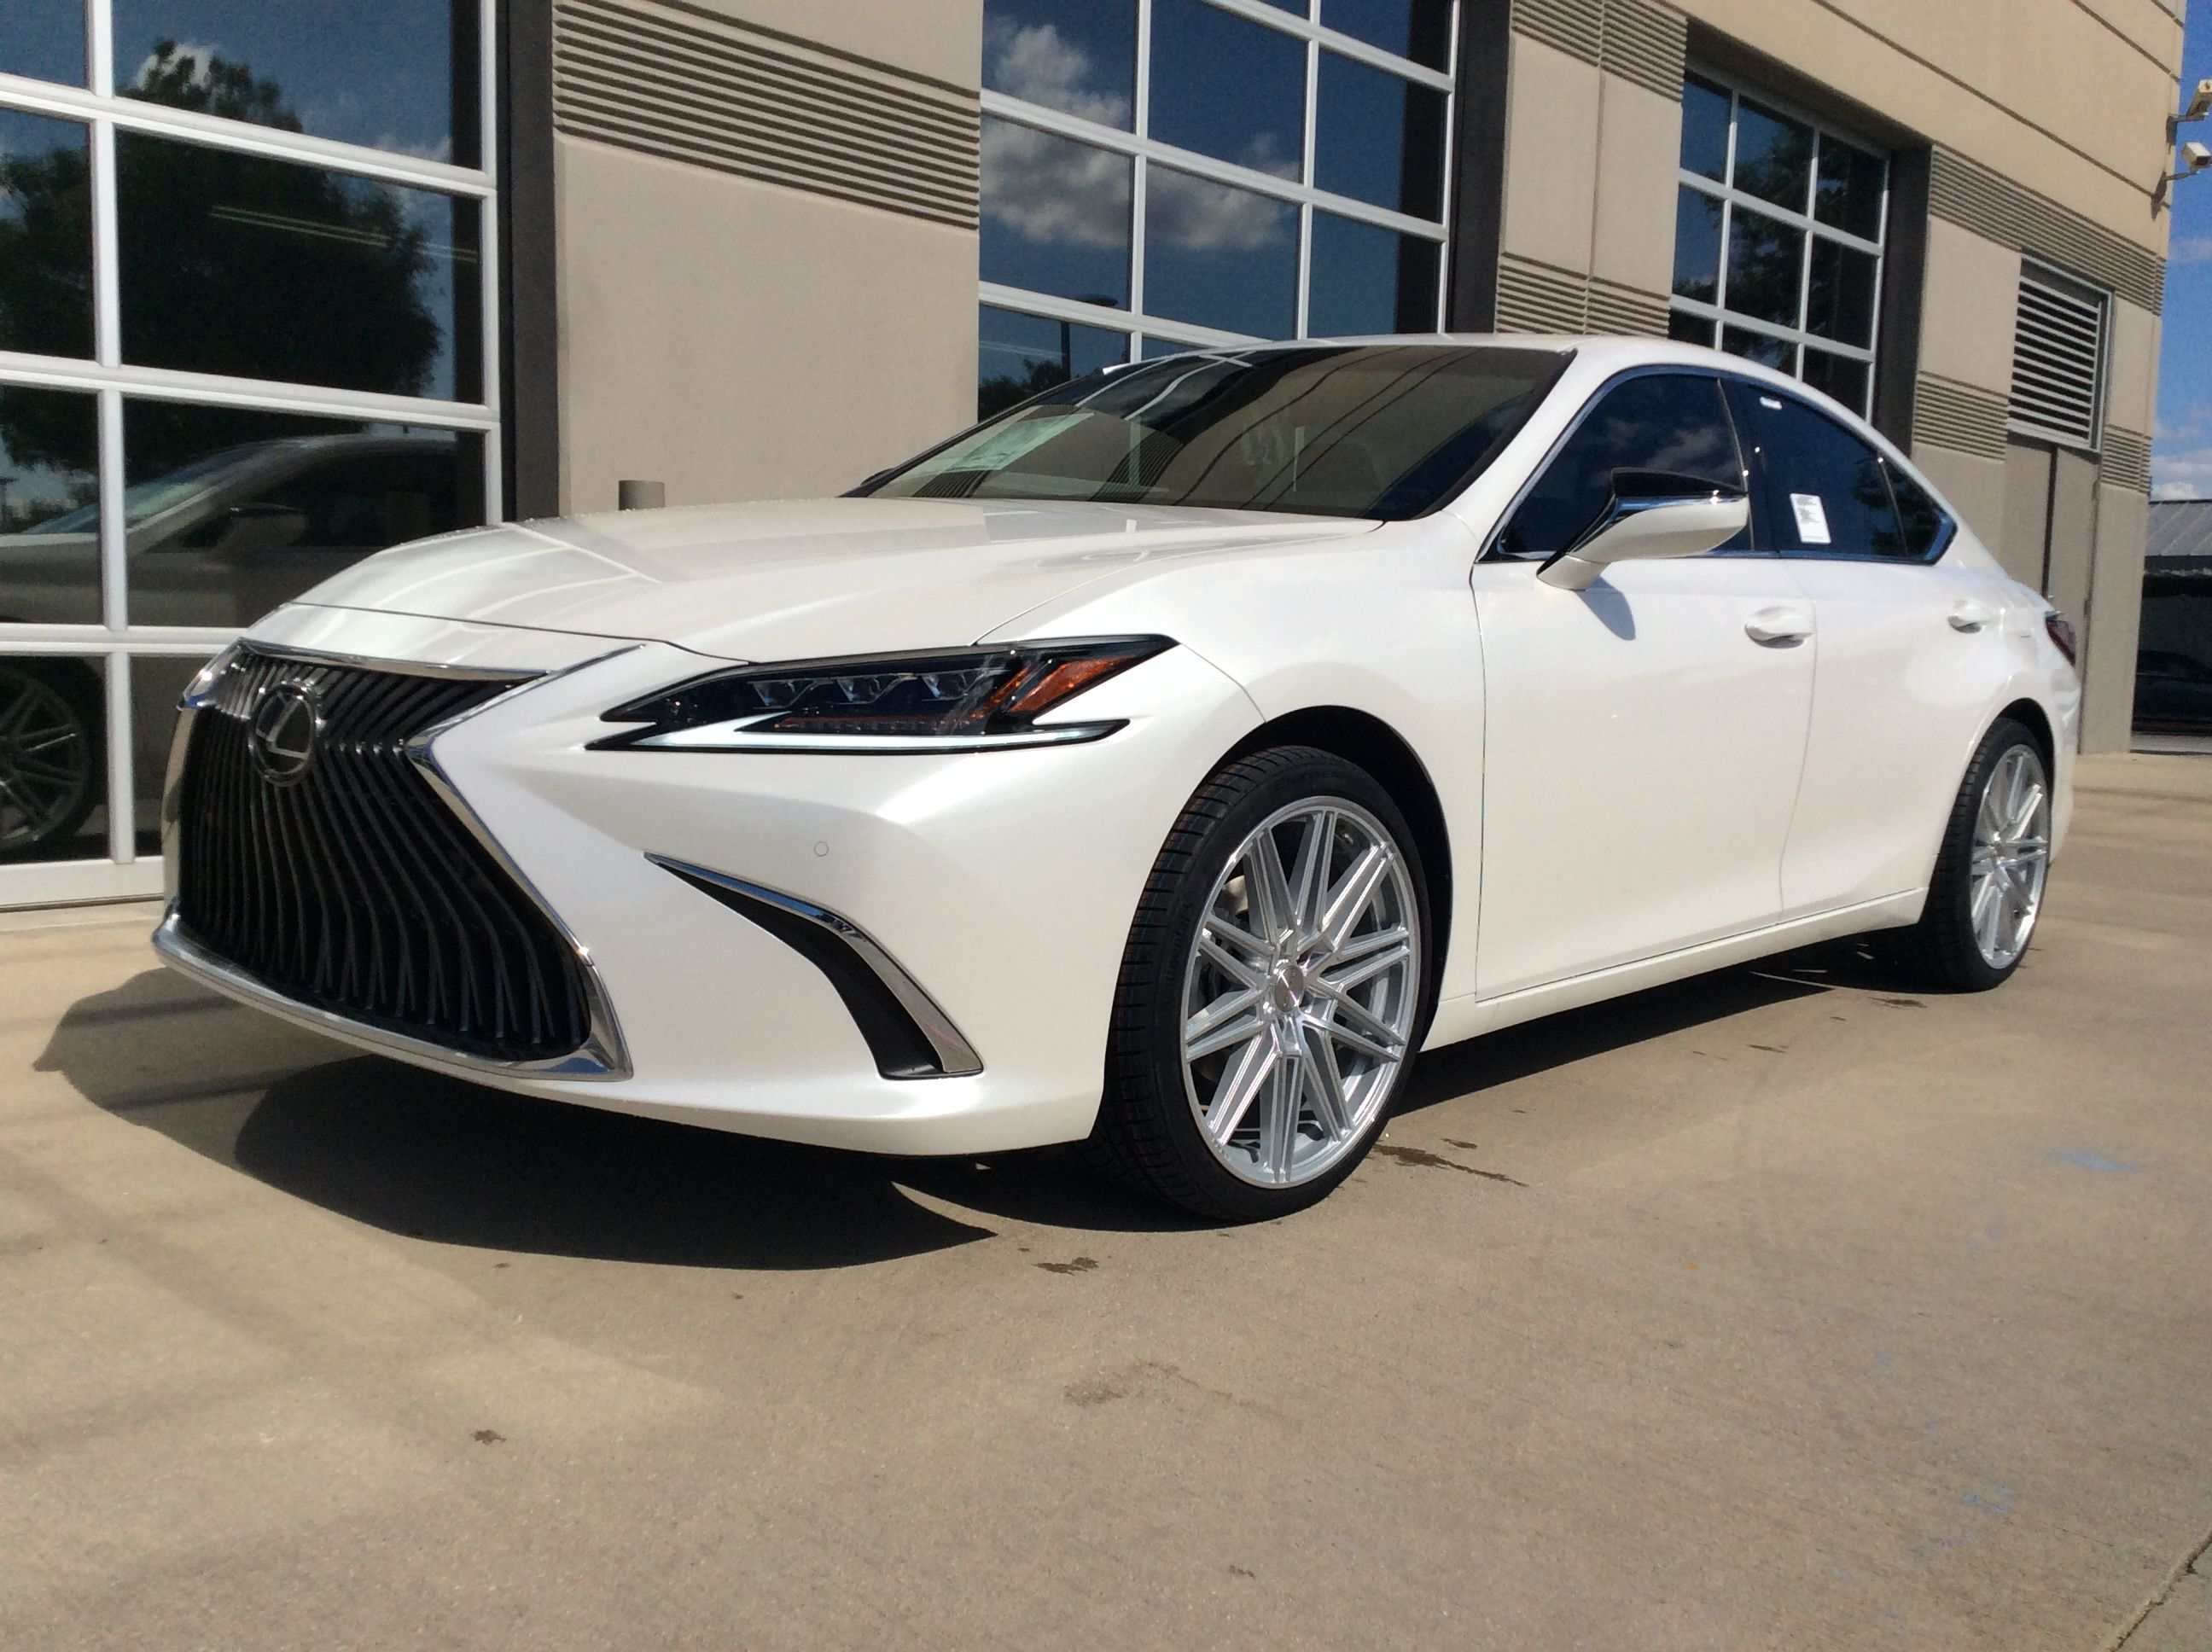 2019 Lexus Es350 With The New Vossen Cv10 Silver Polished Wheels And Continental Tires Lexus Es350 Lexuses350 Vossen Wheels Lexus 350 White Lexus Lexus